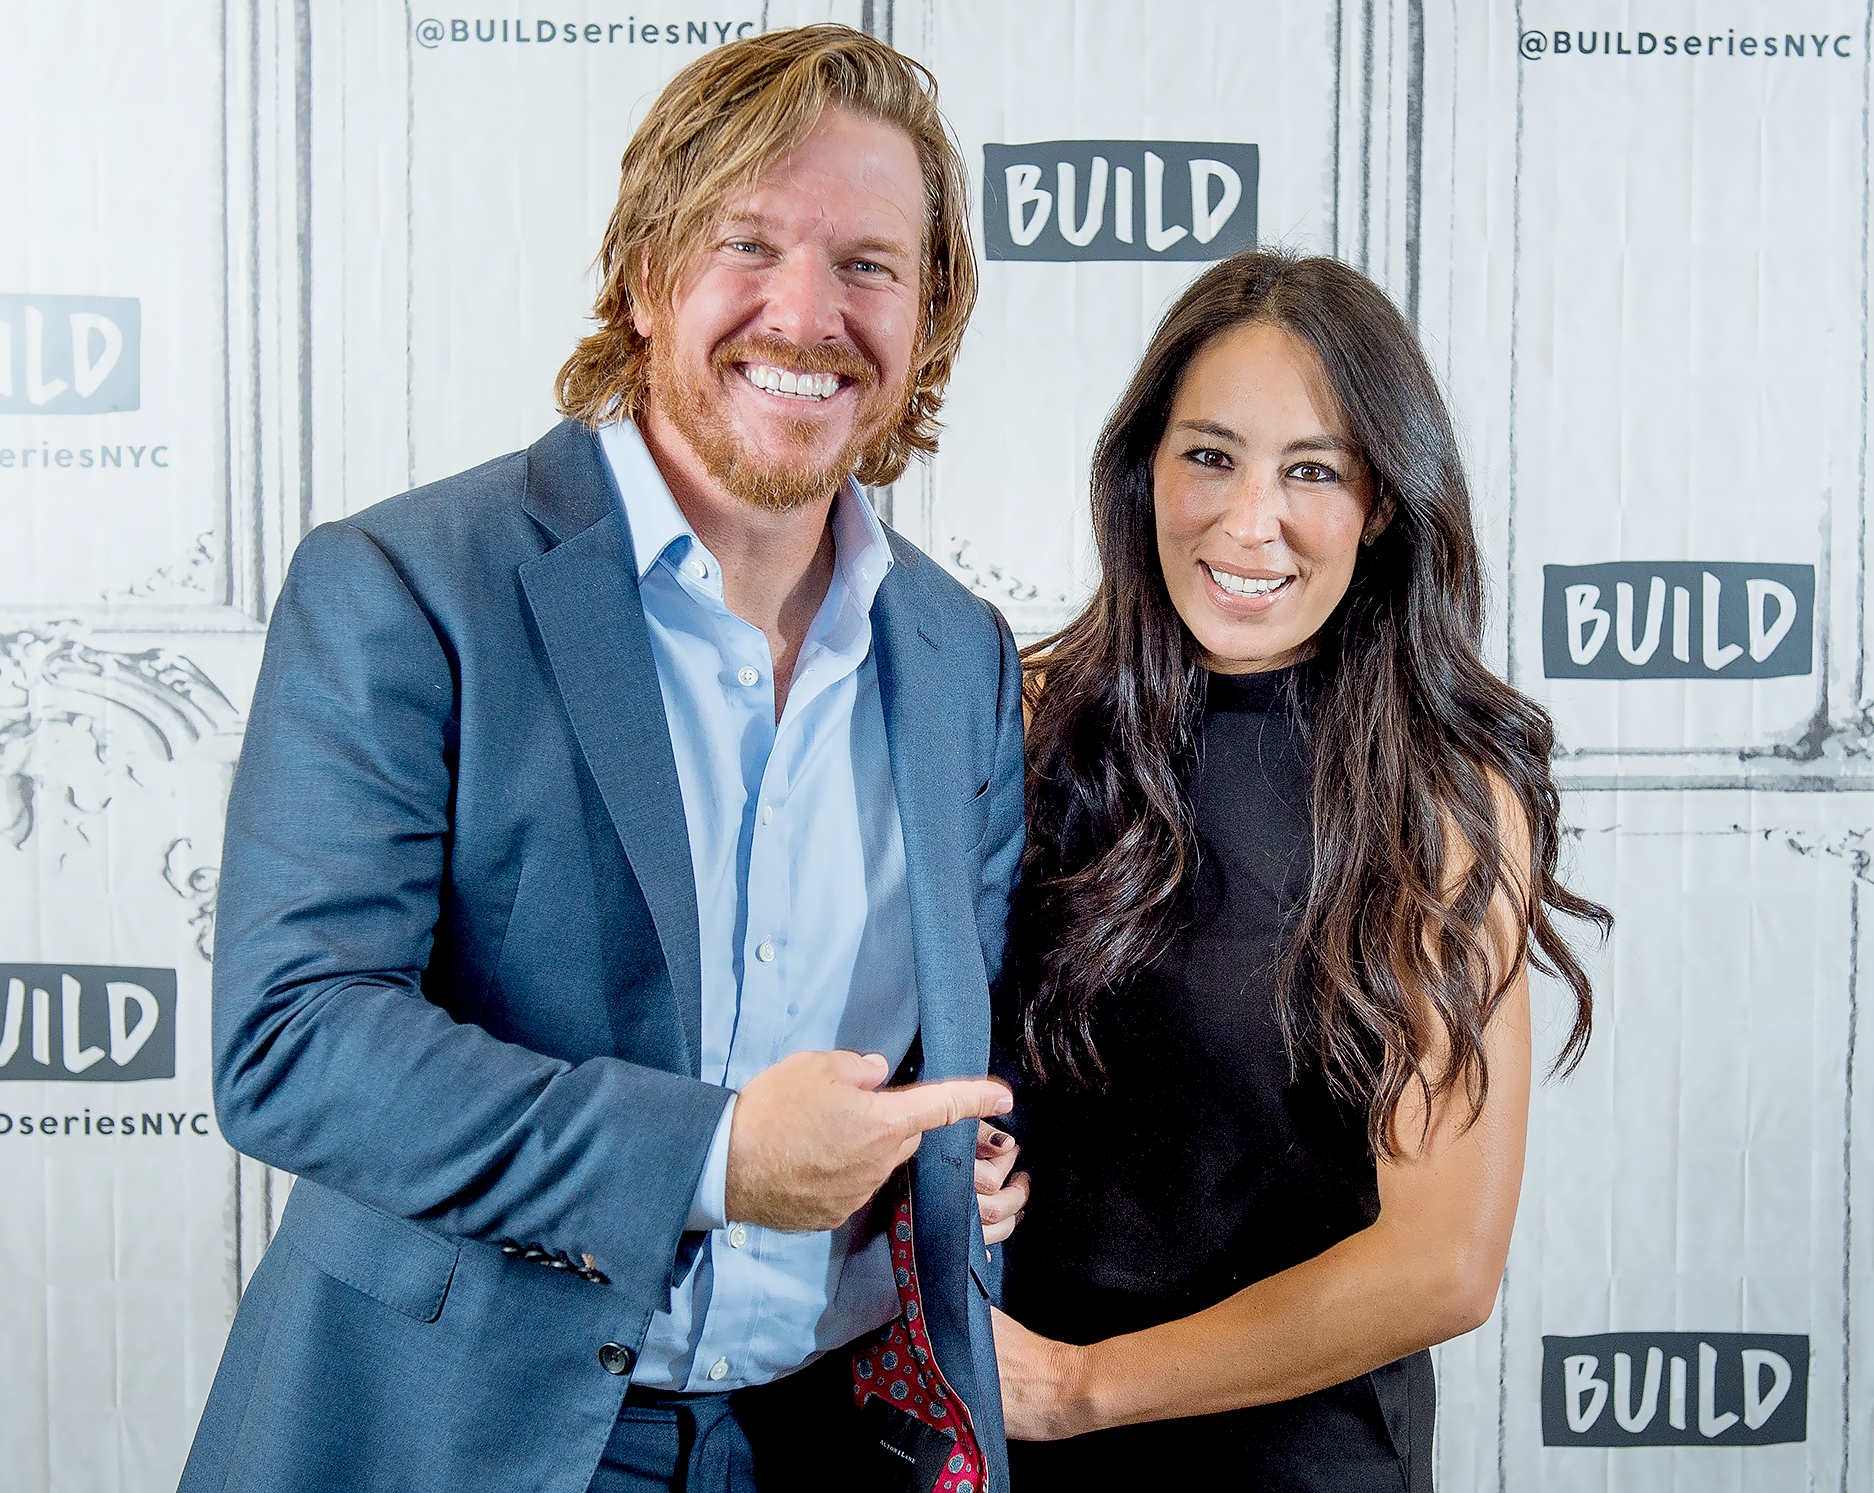 Chip and Joanna Gaines Share Adorable Gender Reveal on Twitter